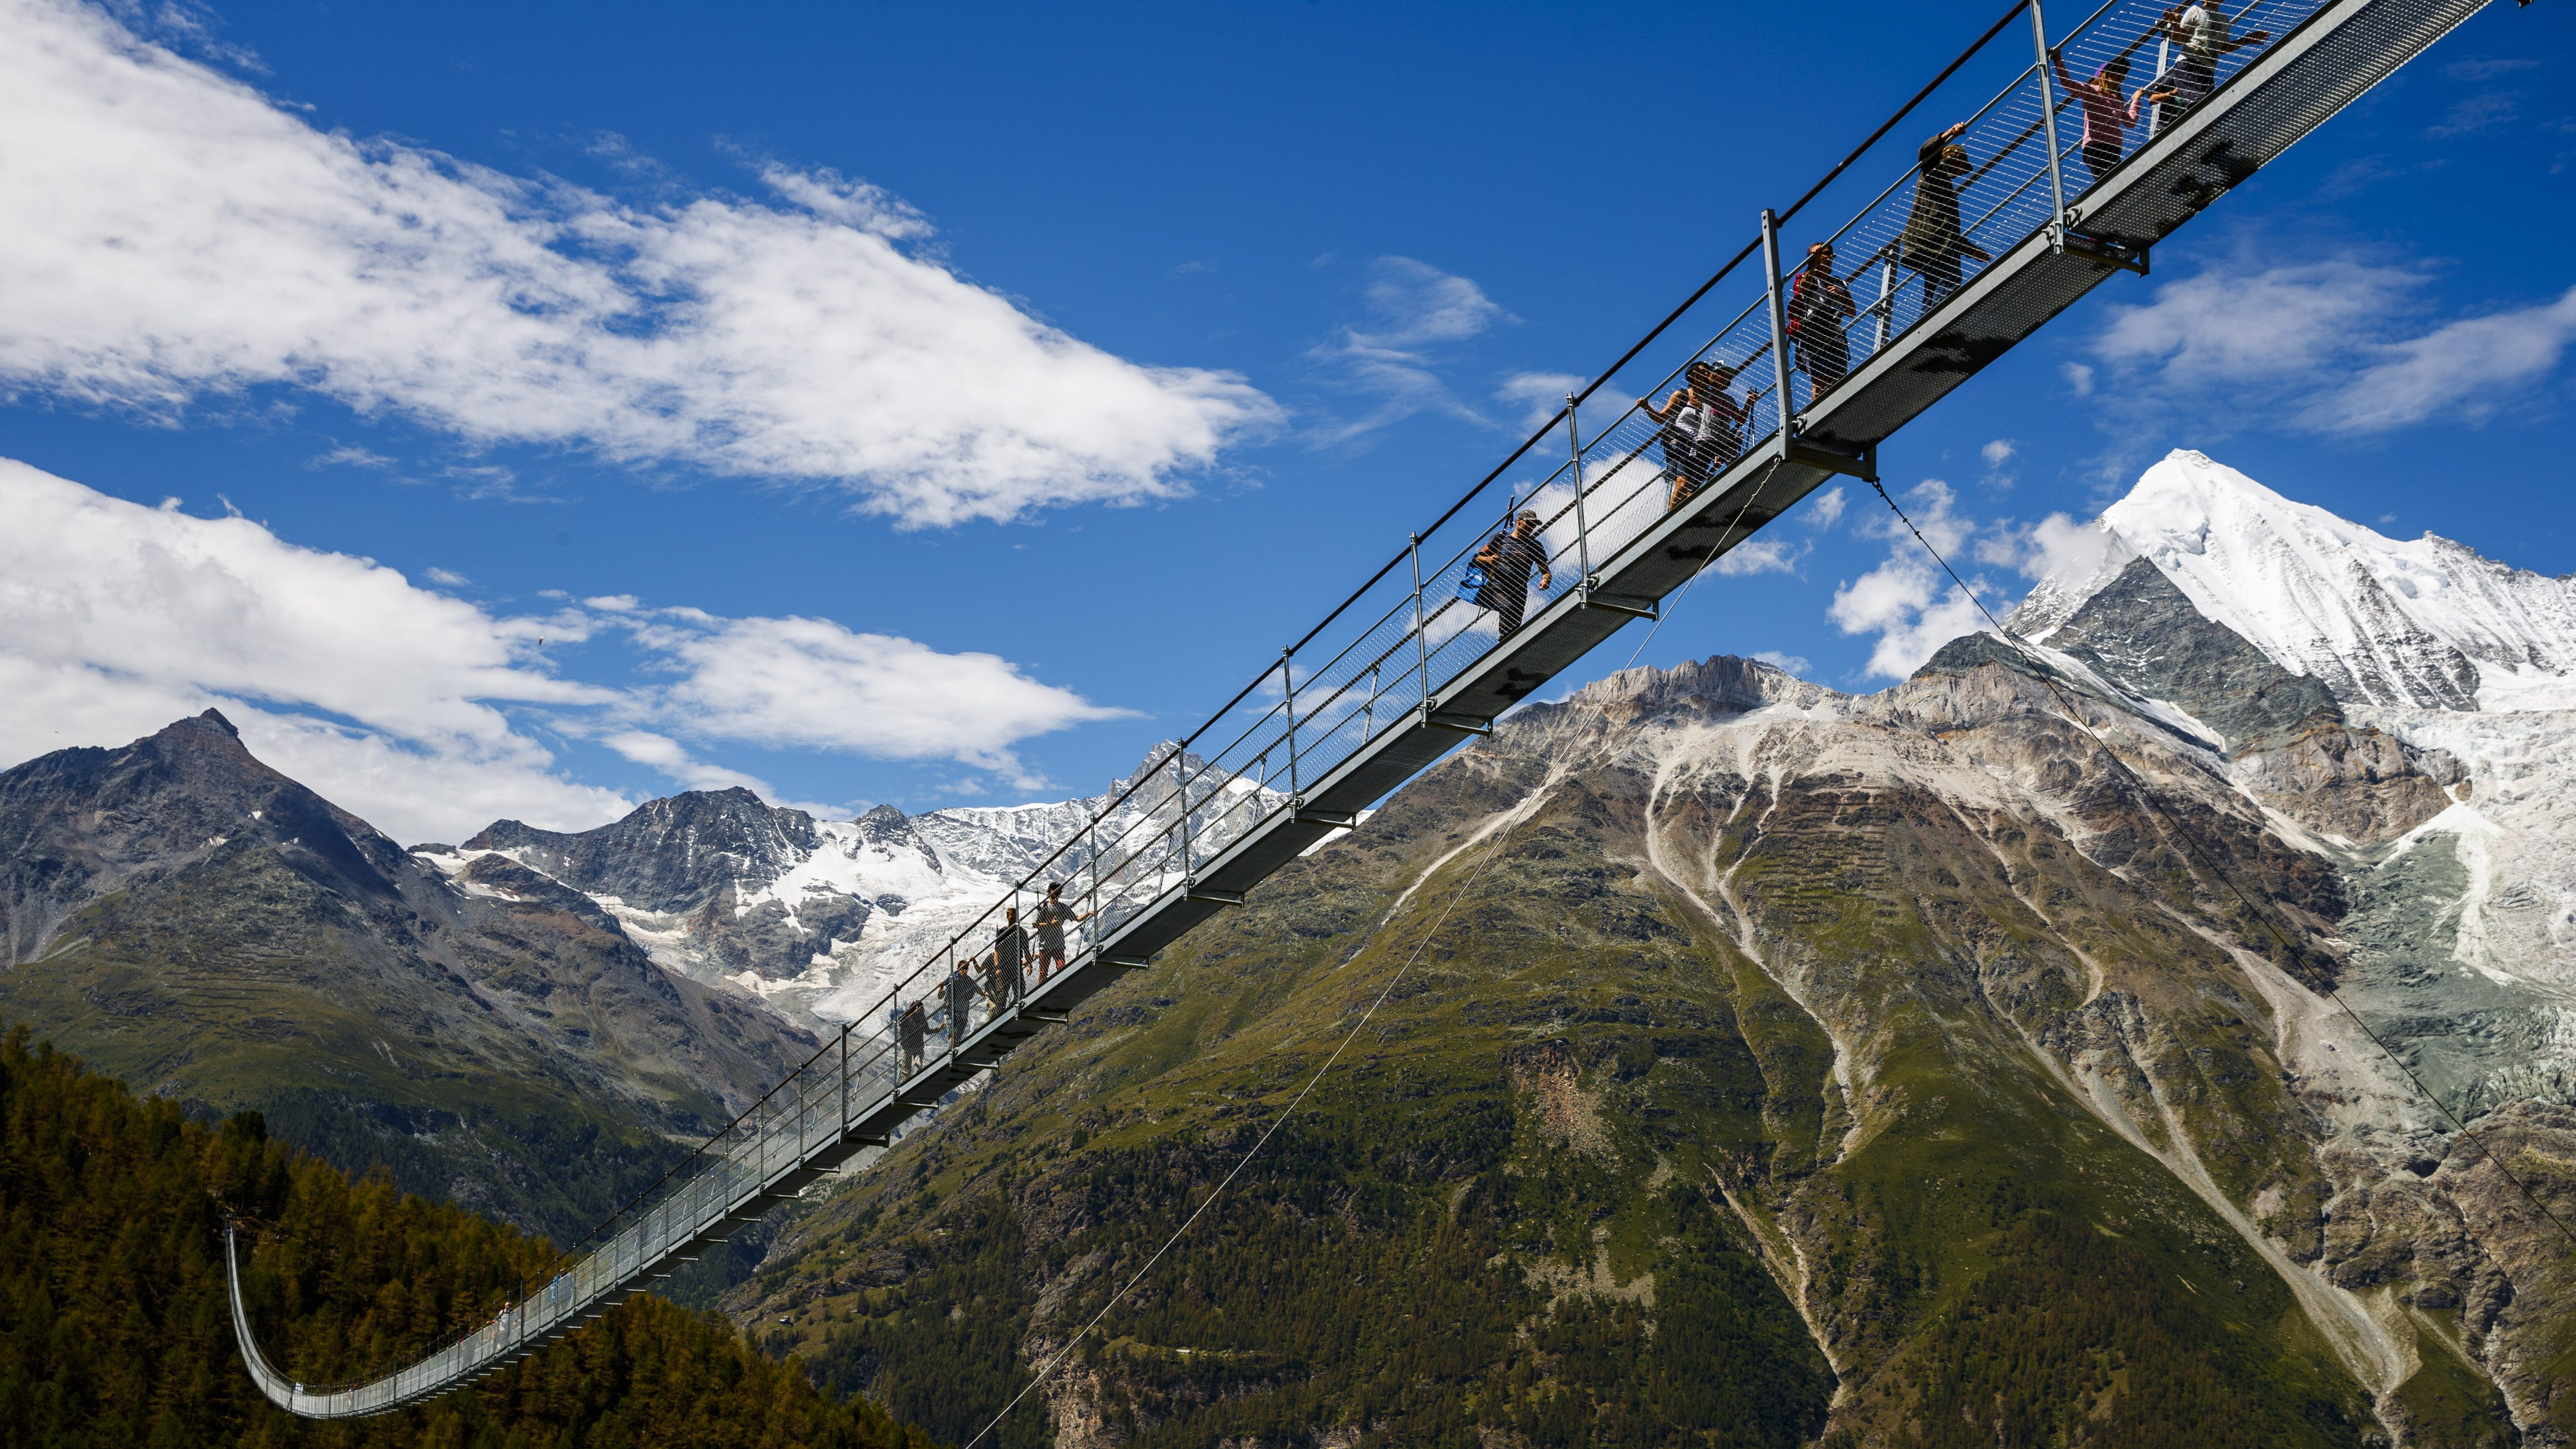 World's longest pedestrian suspension bridge inaugurated